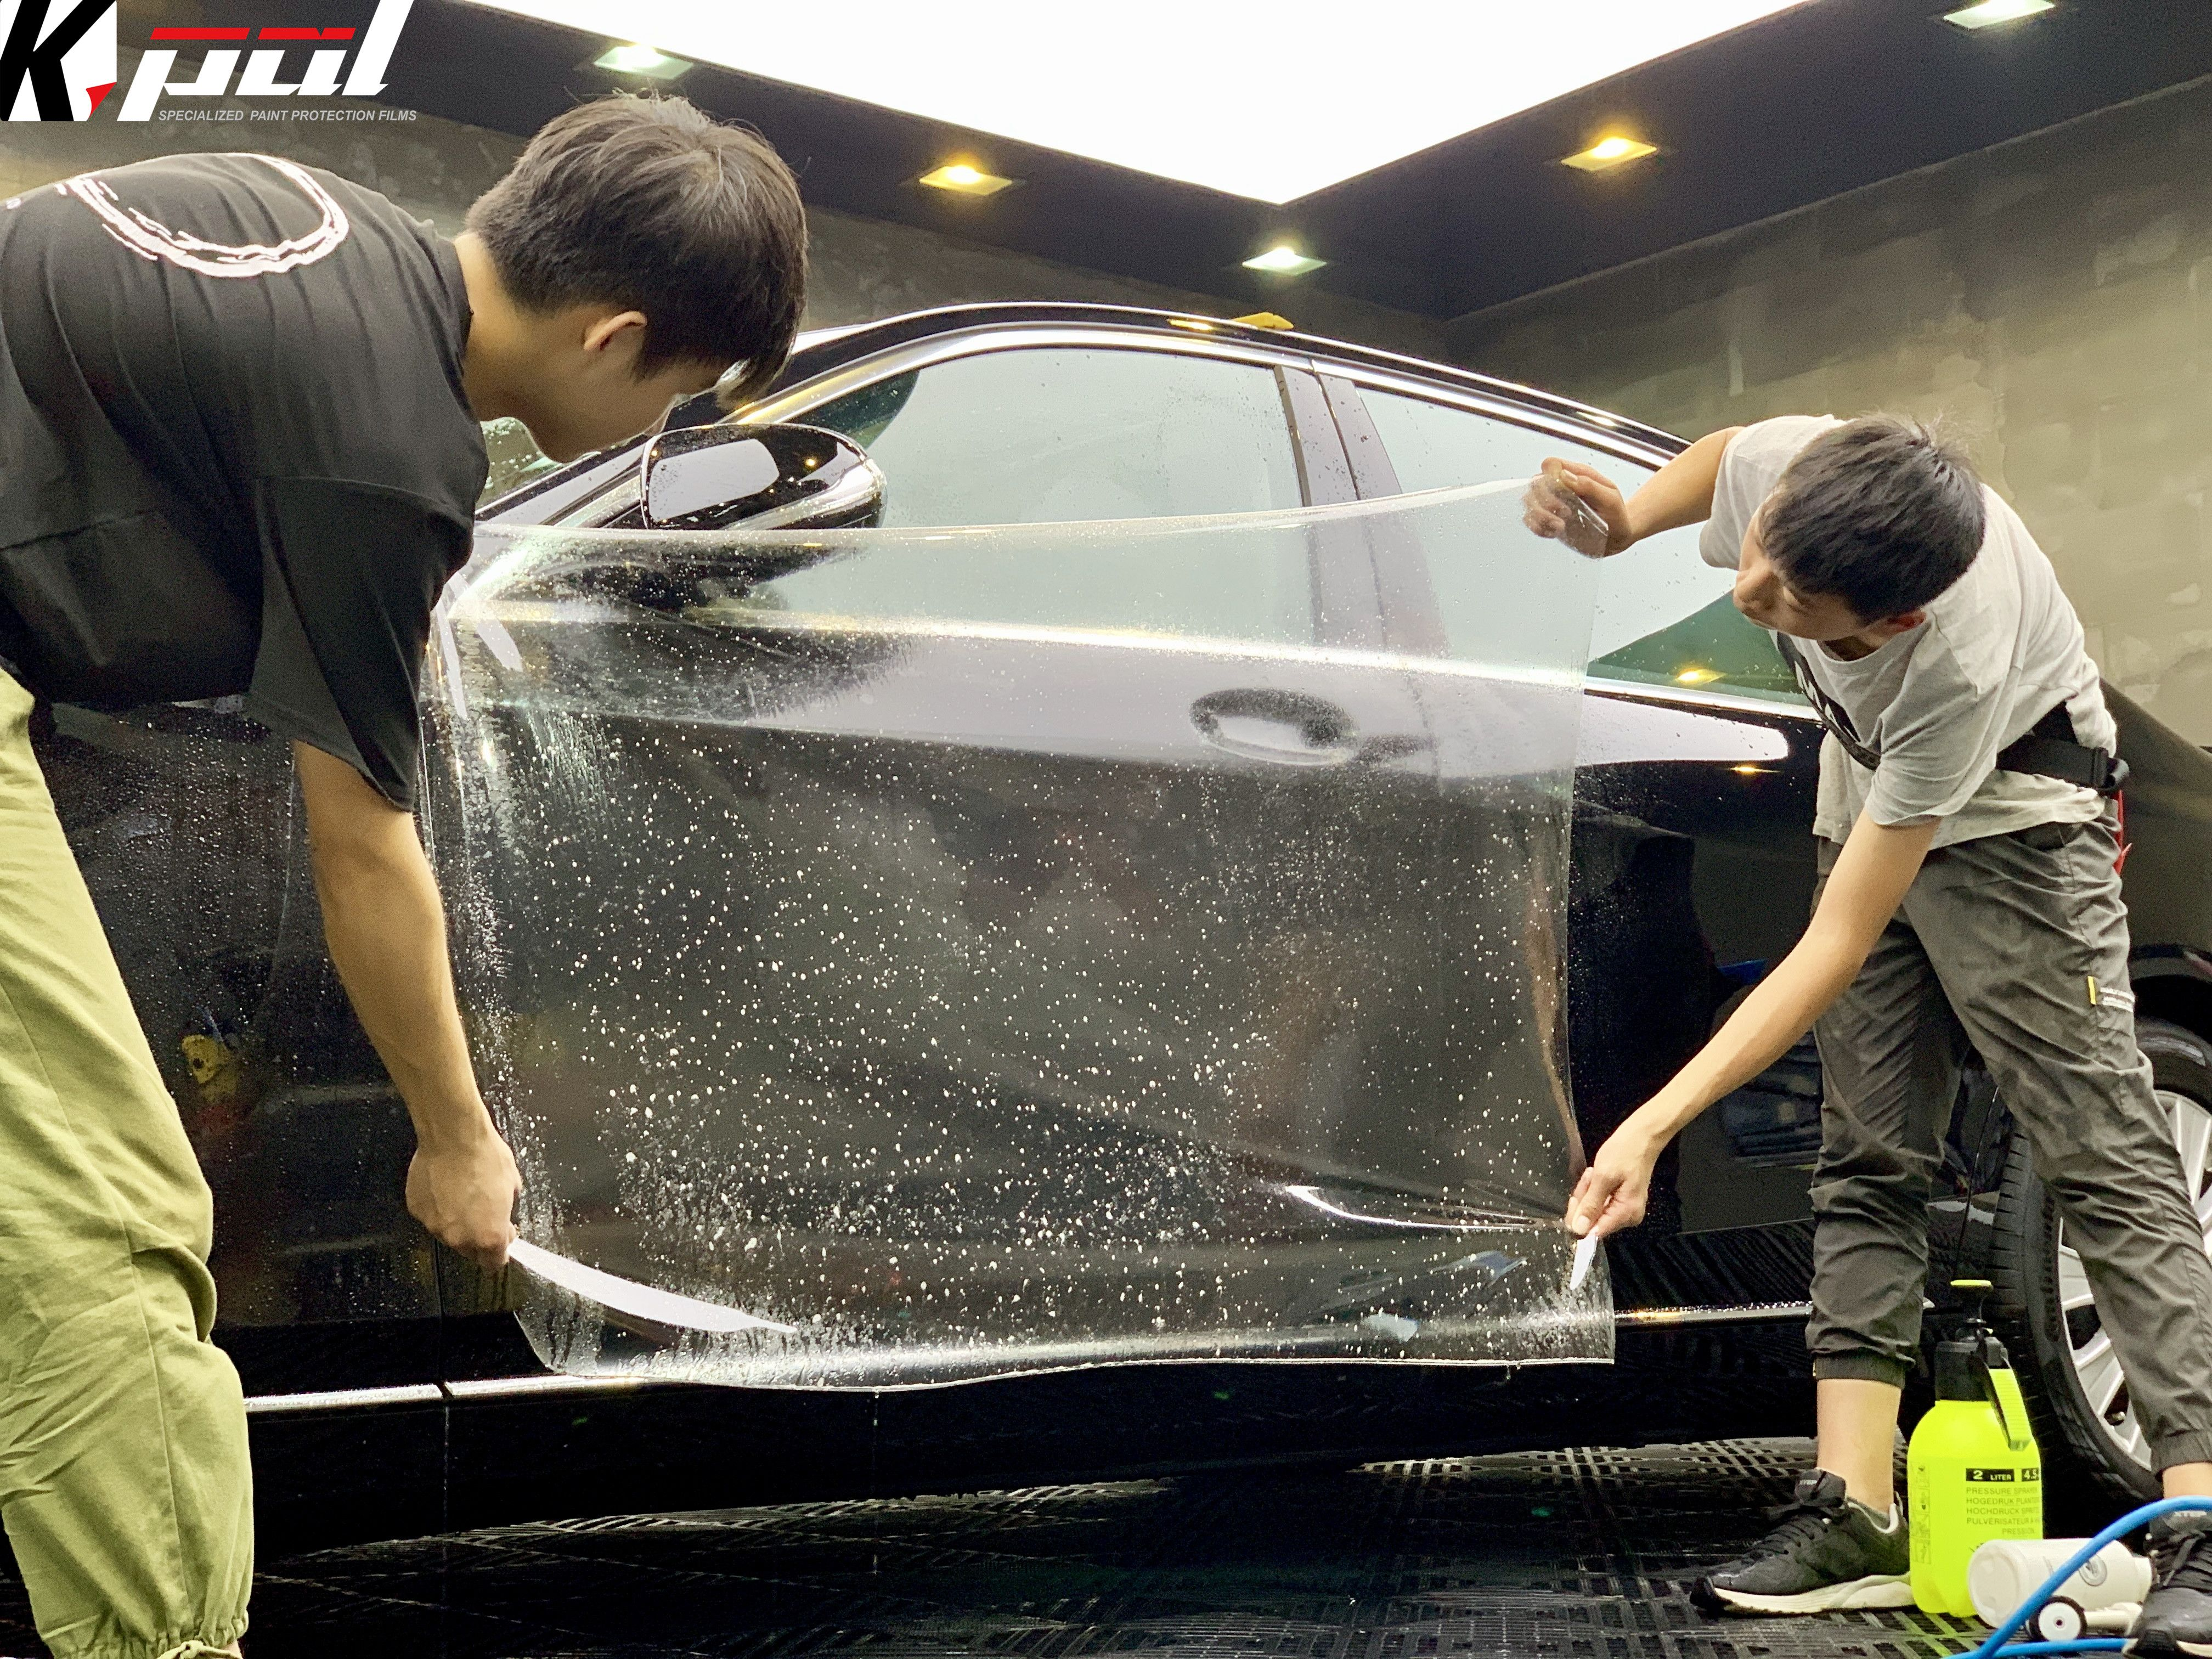 Kpal Paint Protection Film On Mercedes Benz S320 In 2020 Paint Protection Window Tint Film Protection